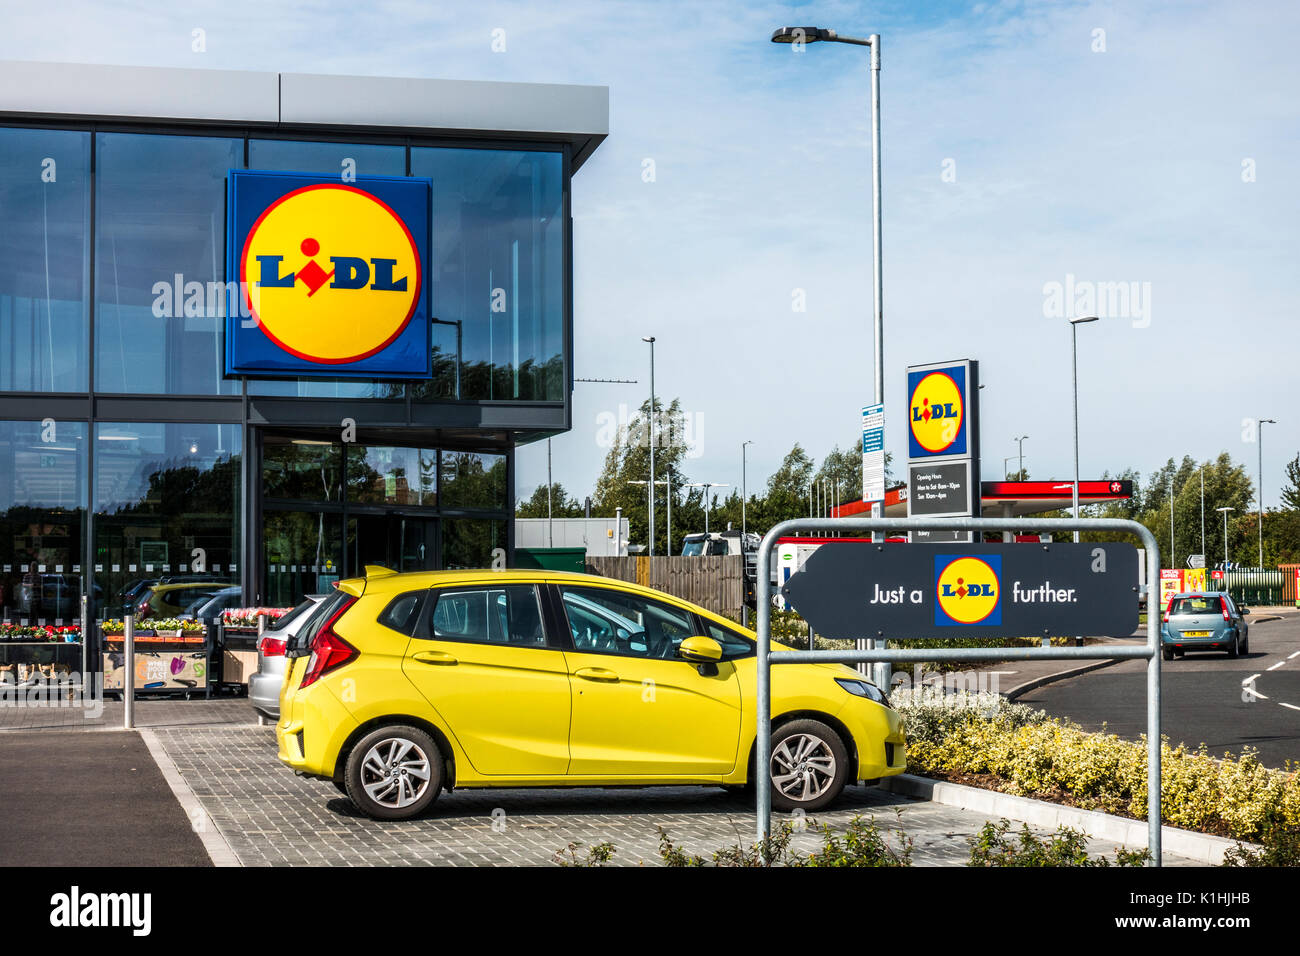 Car park and modern glass window entrance of the new and stylish Lidl supermarket in the town of Bourne, Lincolnshire, England, UK. - Stock Image